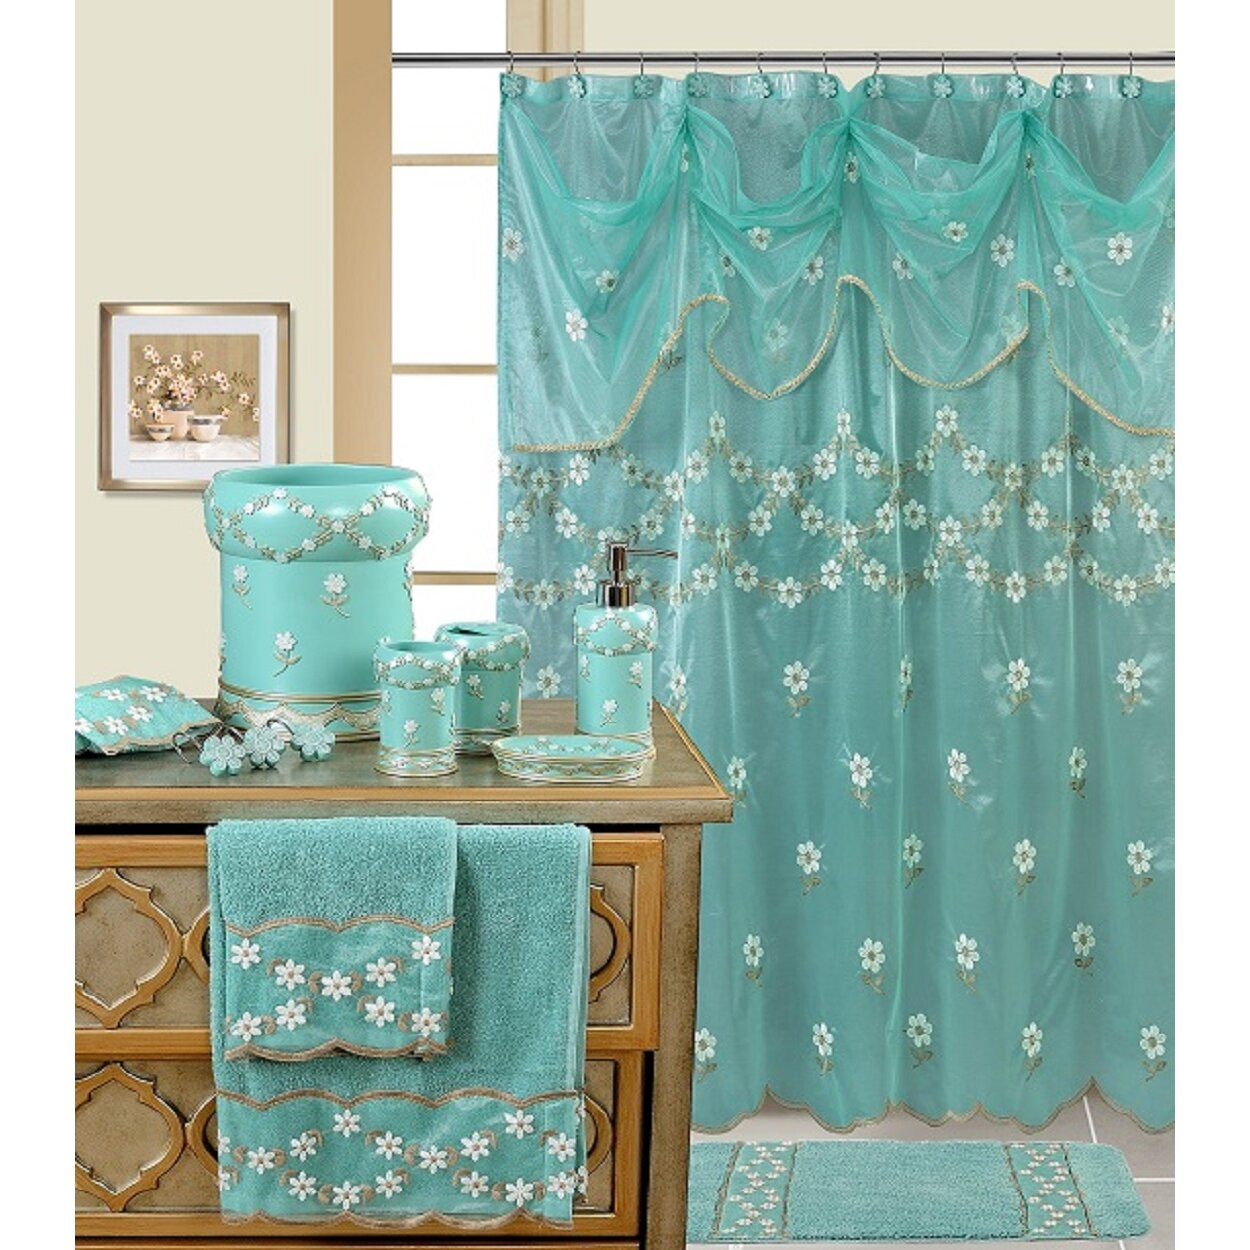 Daniels Bath Decorative Shower Curtain & Reviews  Wayfair. Spiritual Wall Decor. Cabin Decorating Ideas. Round Dining Room. Decorative Cork Bulletin Board. 2 Piece Living Room Set. Home Decorations.com. Christmas Decorating Games. Training Room Chairs